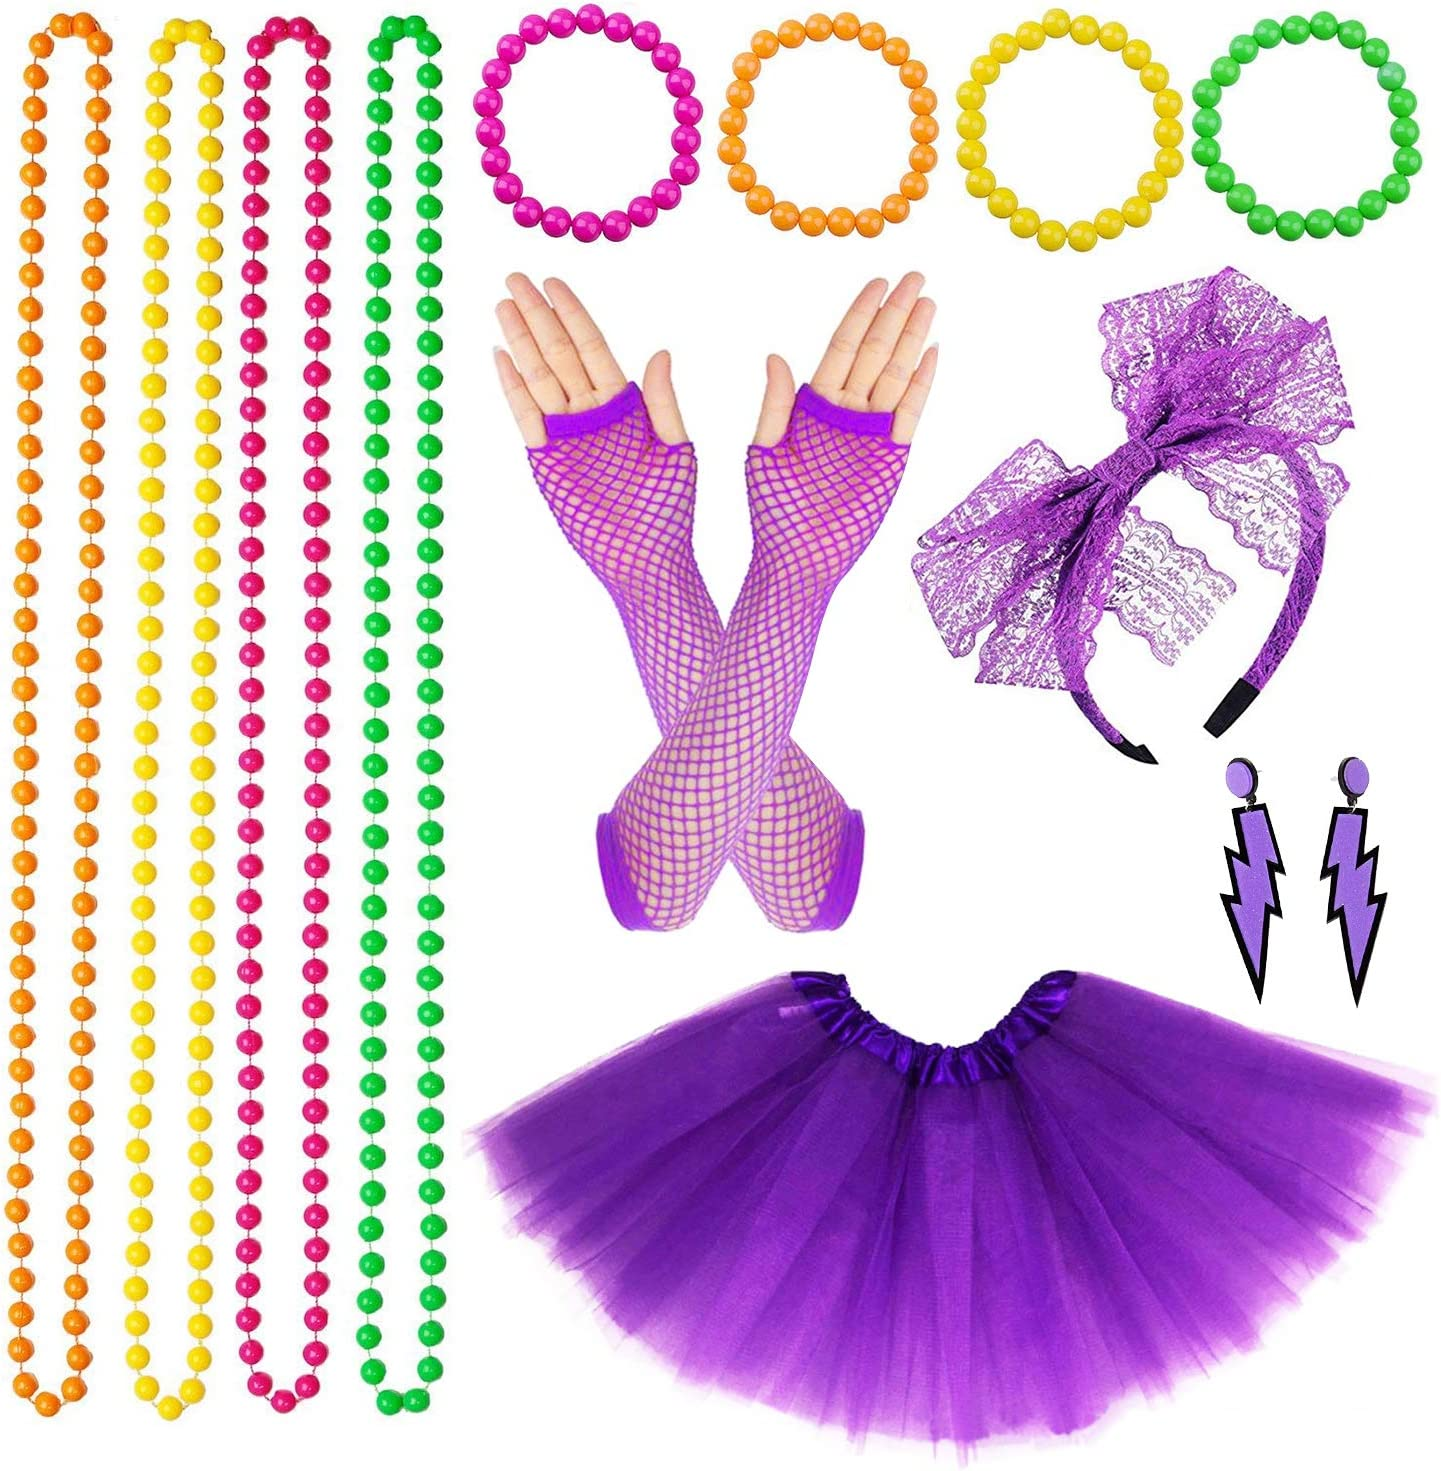 1980s Neon Costume Accessories Jewellery/with Earring Bracelets Bead Necklaces/Large Size Skirt Gloves set for Cool 80s Party Purple VSTON 80 s Fancy Dress For Women Adult